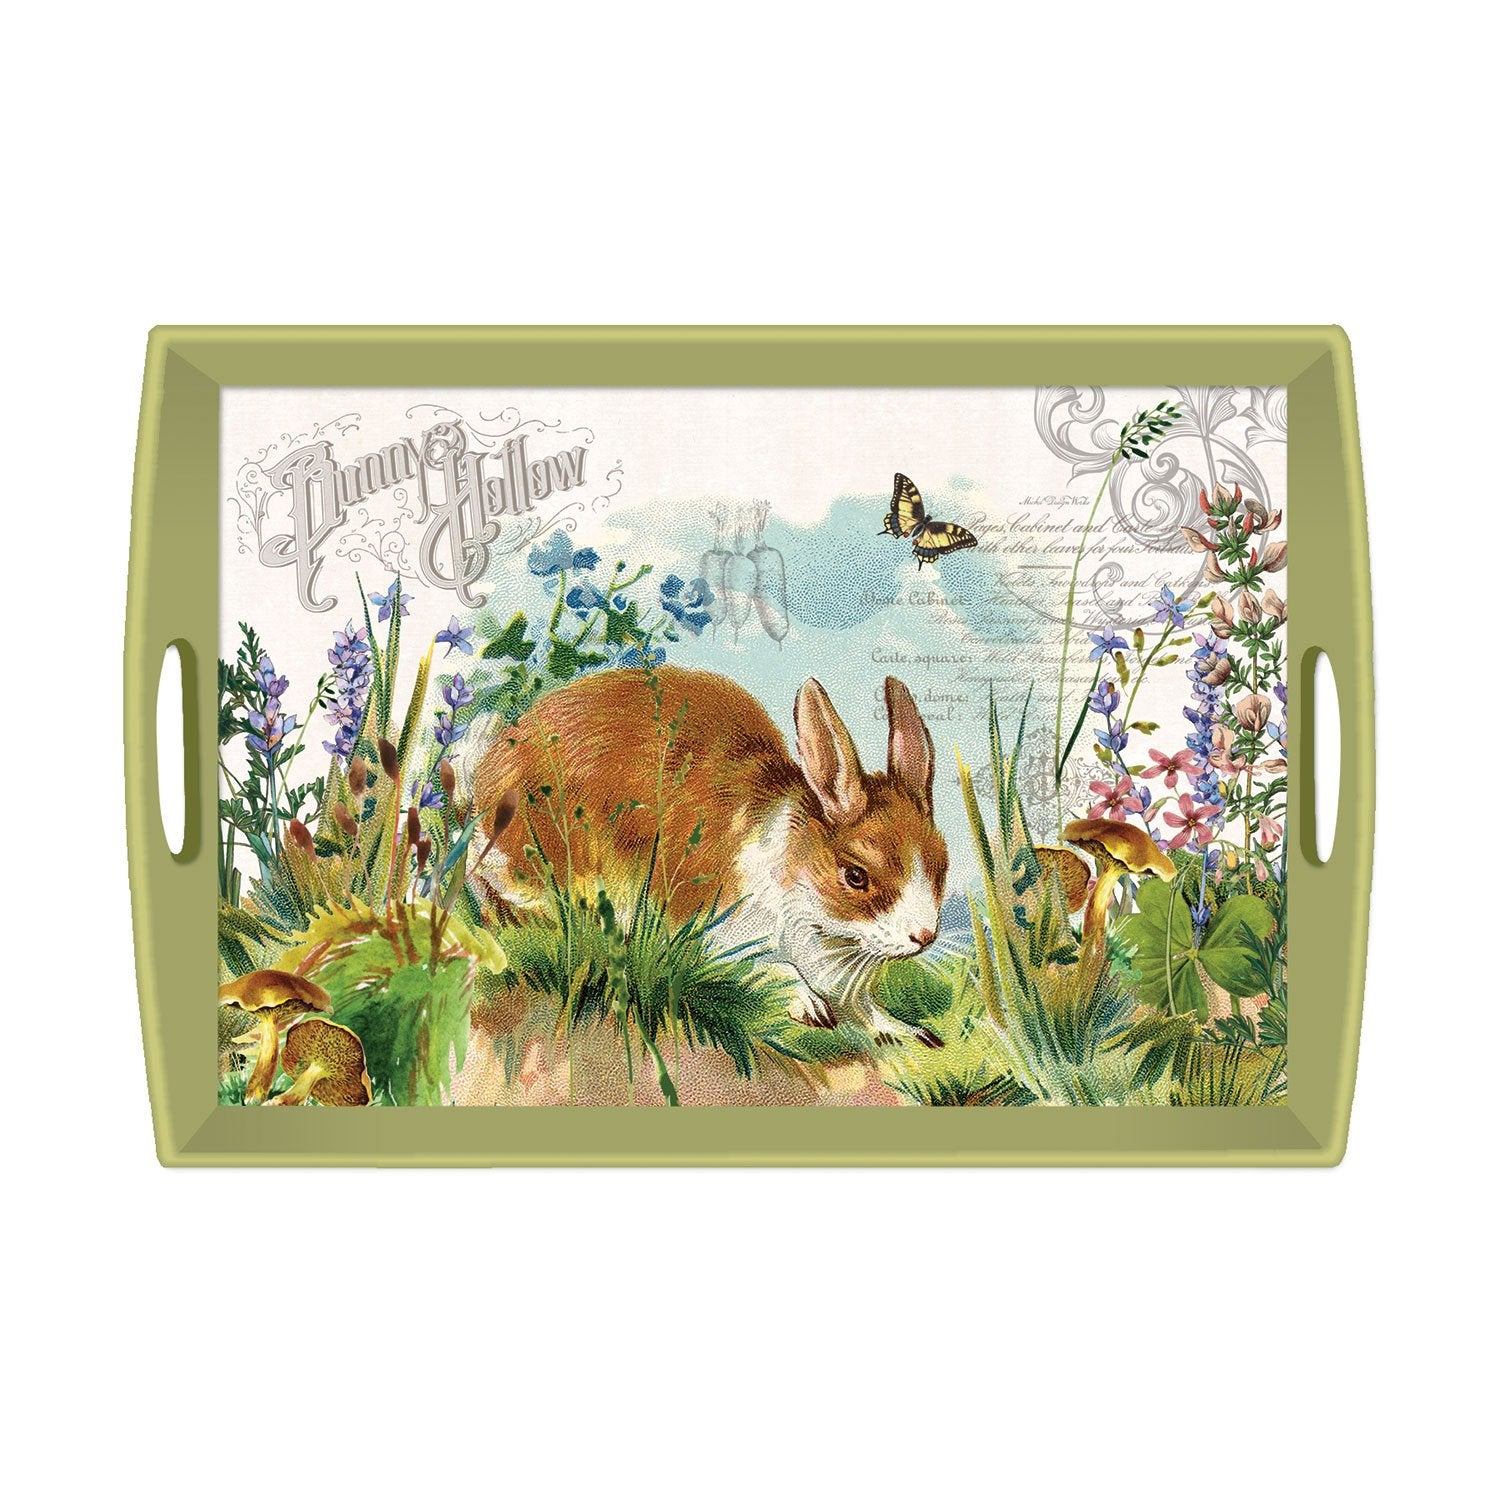 Bunny Hollow Decoupage Large Wooden Tray